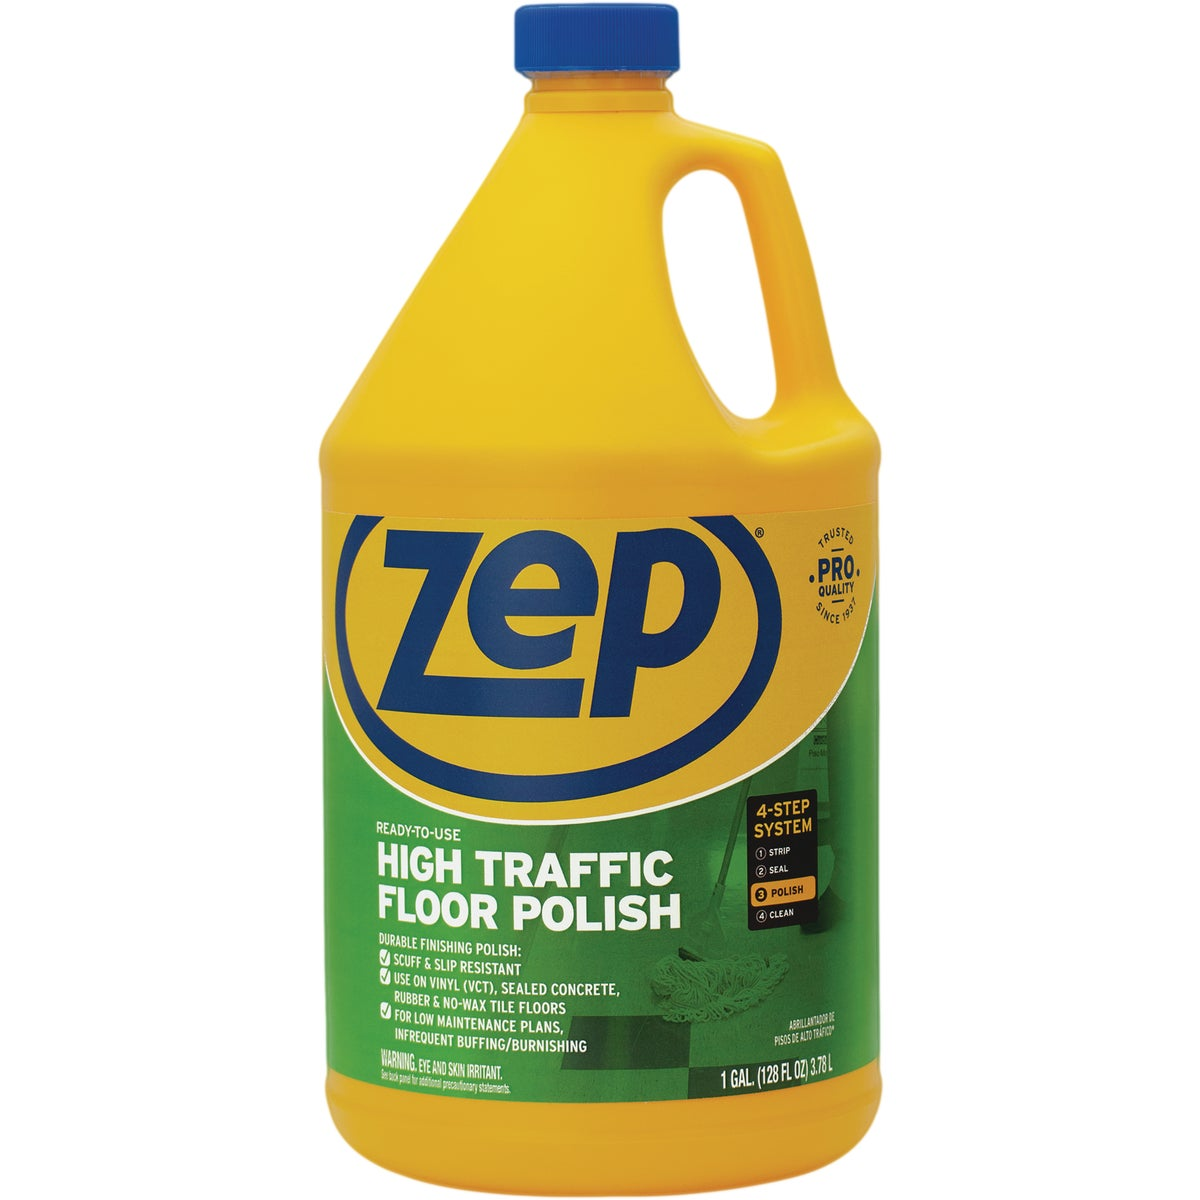 GAL HT FLOOR POLISH - ZUHTFF128 by Zep Enforcer Inc